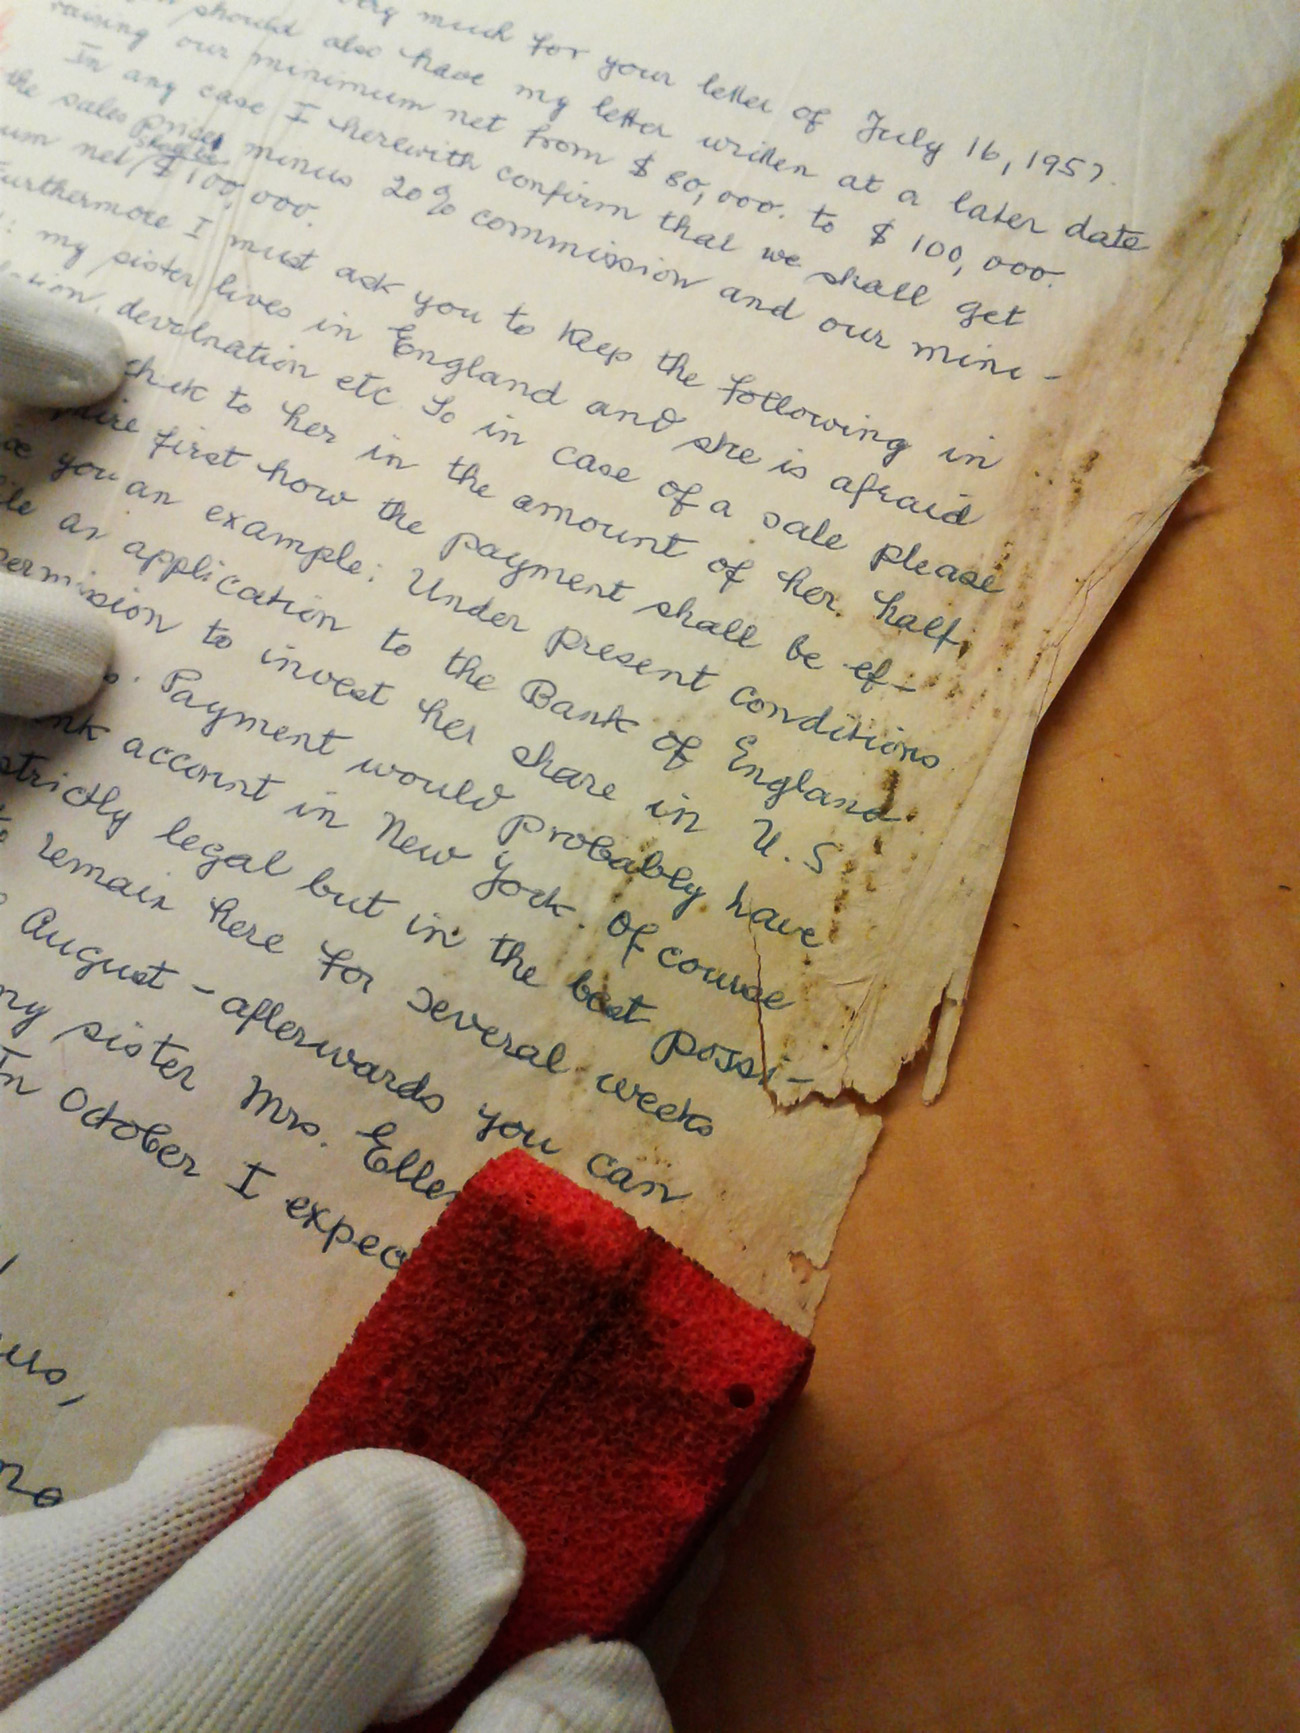 Using an absorene sponge to carefully clean mold off a letter from the M. Knoedler & Co. correspondence